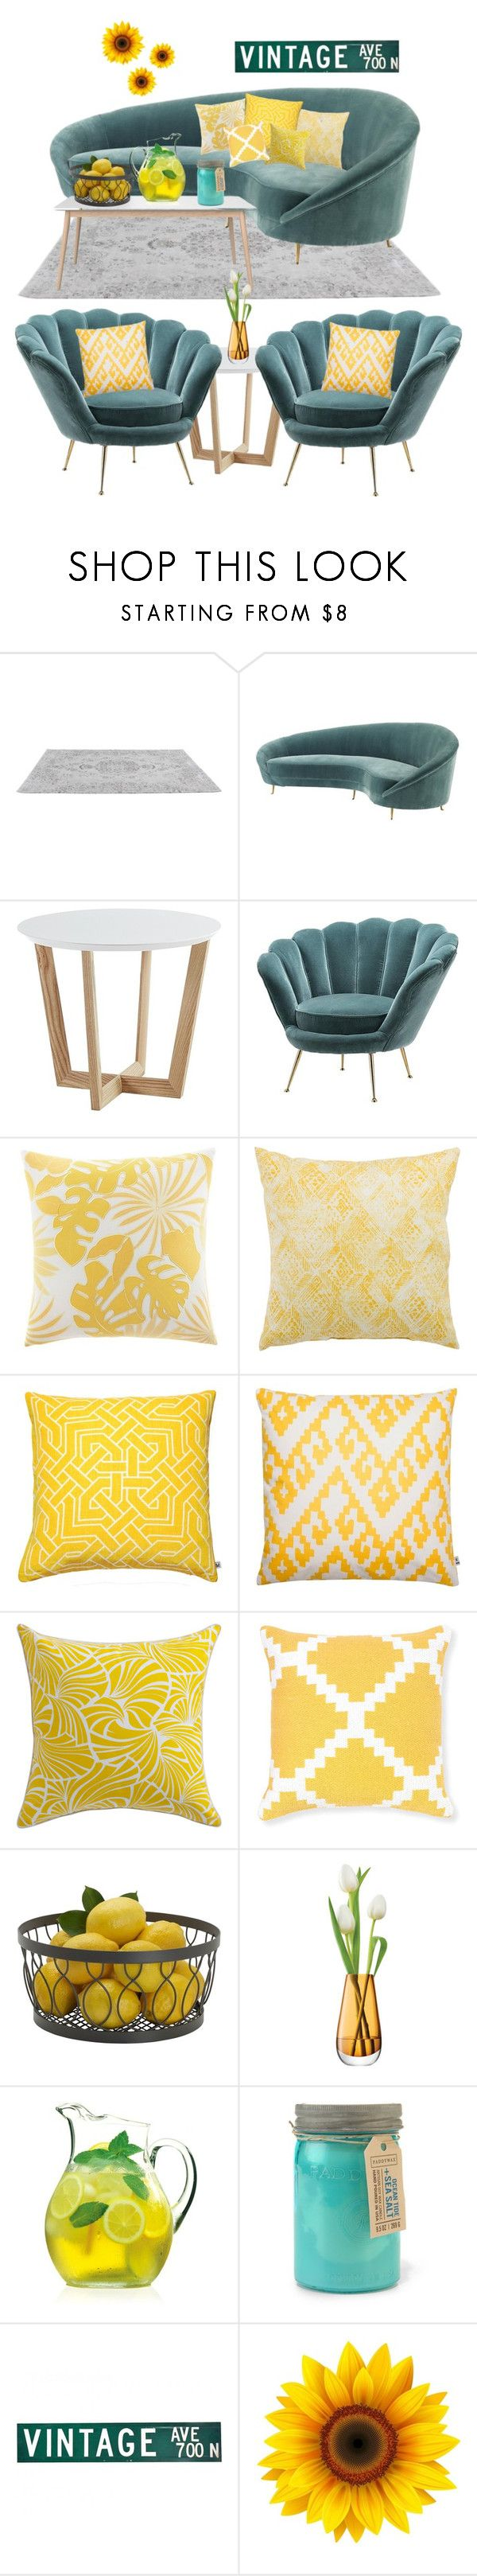 """""""Teal and Yellow"""" by puppykittybunnyluv ❤ liked on Polyvore featuring interior, interiors, interior design, home, home decor, interior decorating, Eichholtz, Tommy Bahama, Jaipur and Nina Kullberg"""